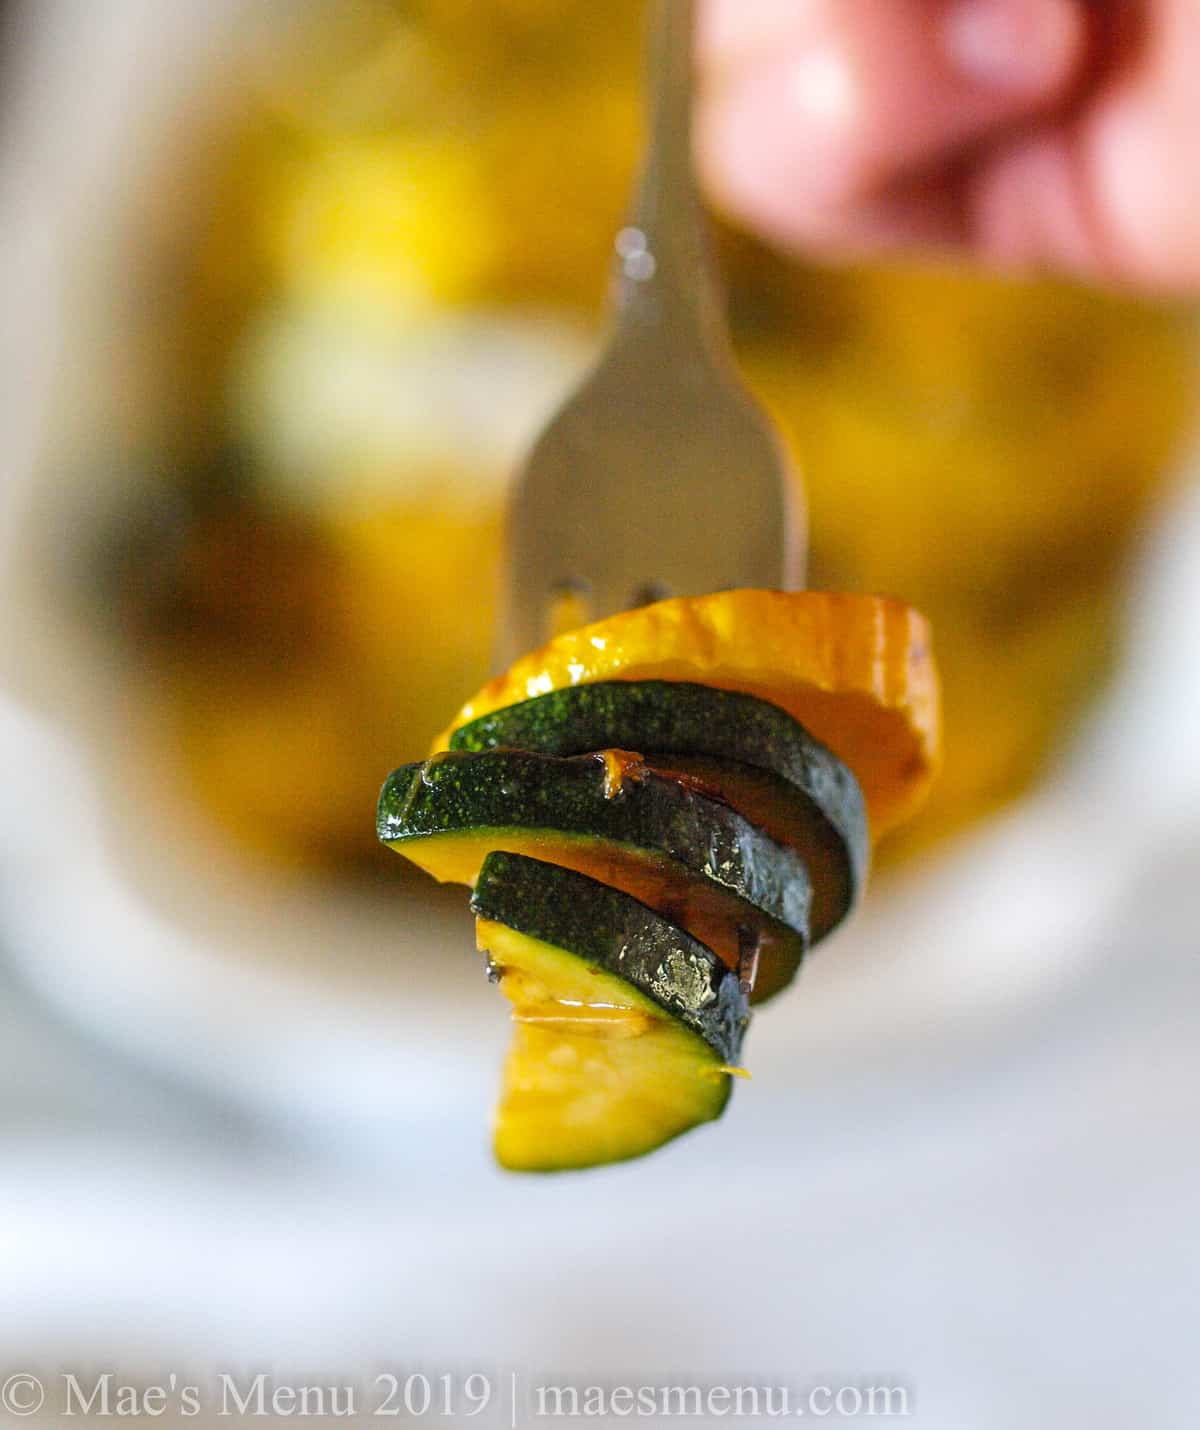 Sauteed zucchini and yellow squash on a fork.